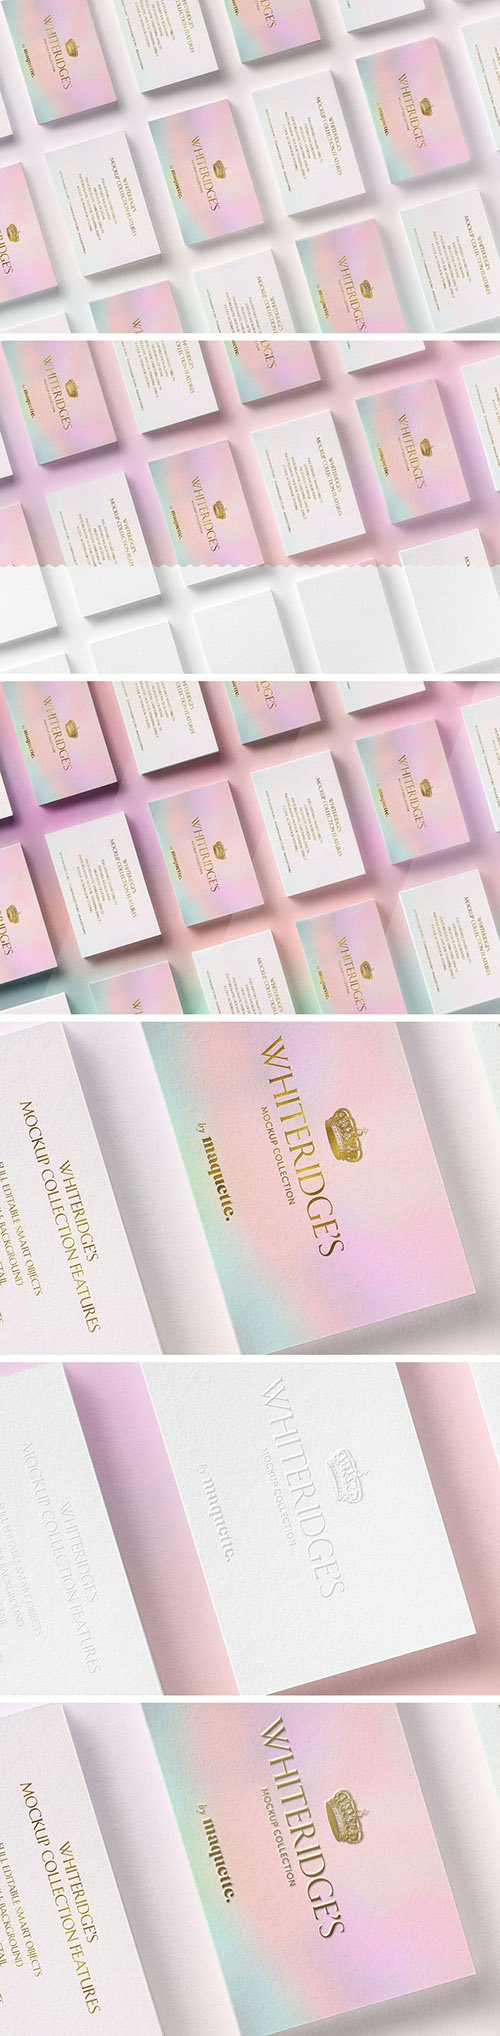 Array of Luxury Gold-Embossed Business Cards Mockup 2 130437028 PSDT